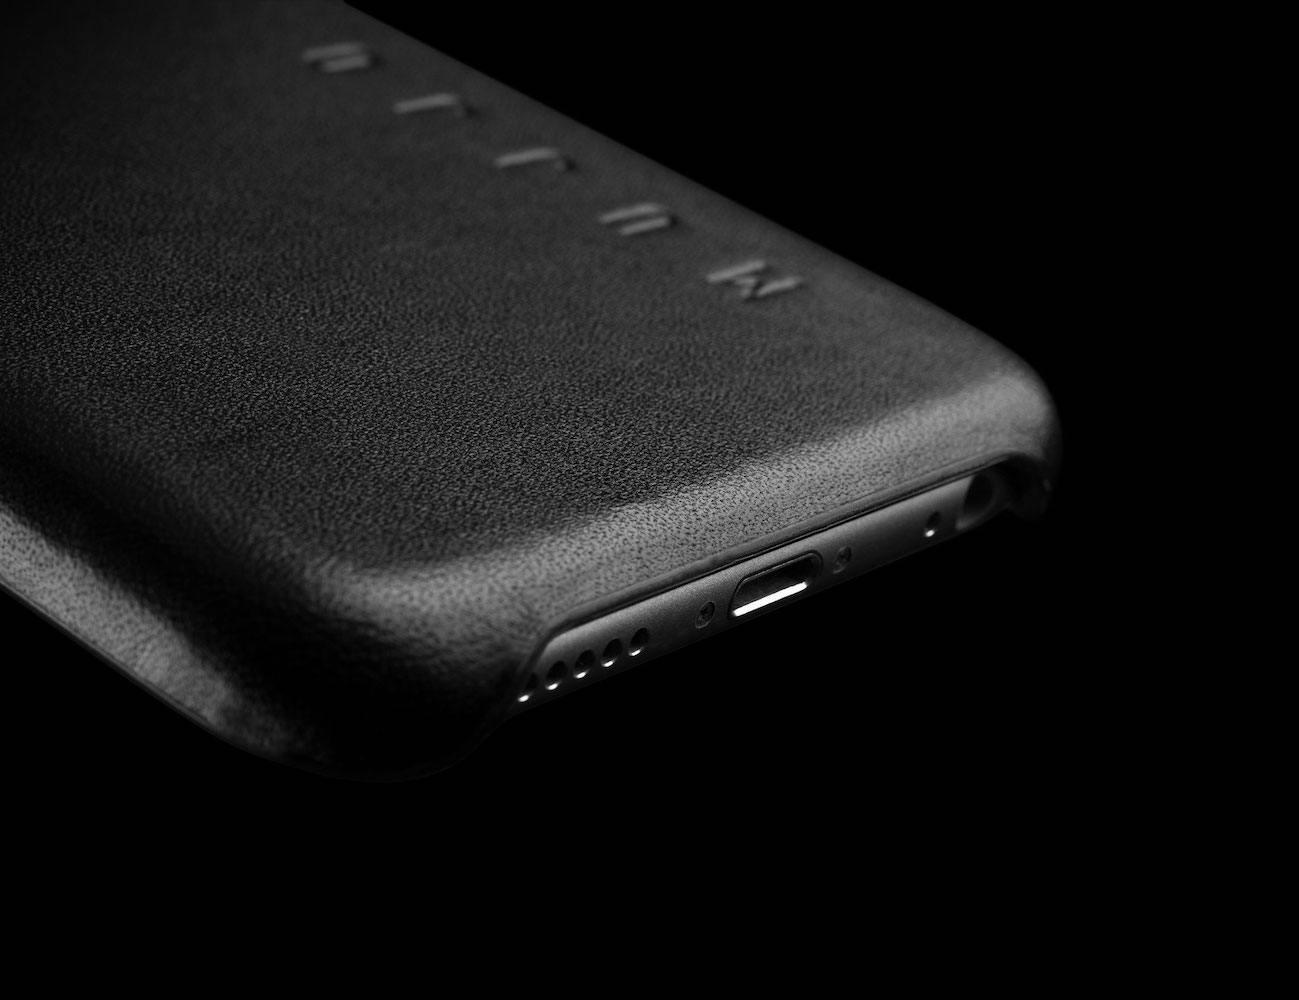 leather-iphone-6s-and-6s-plus-case-by-mujjo-01